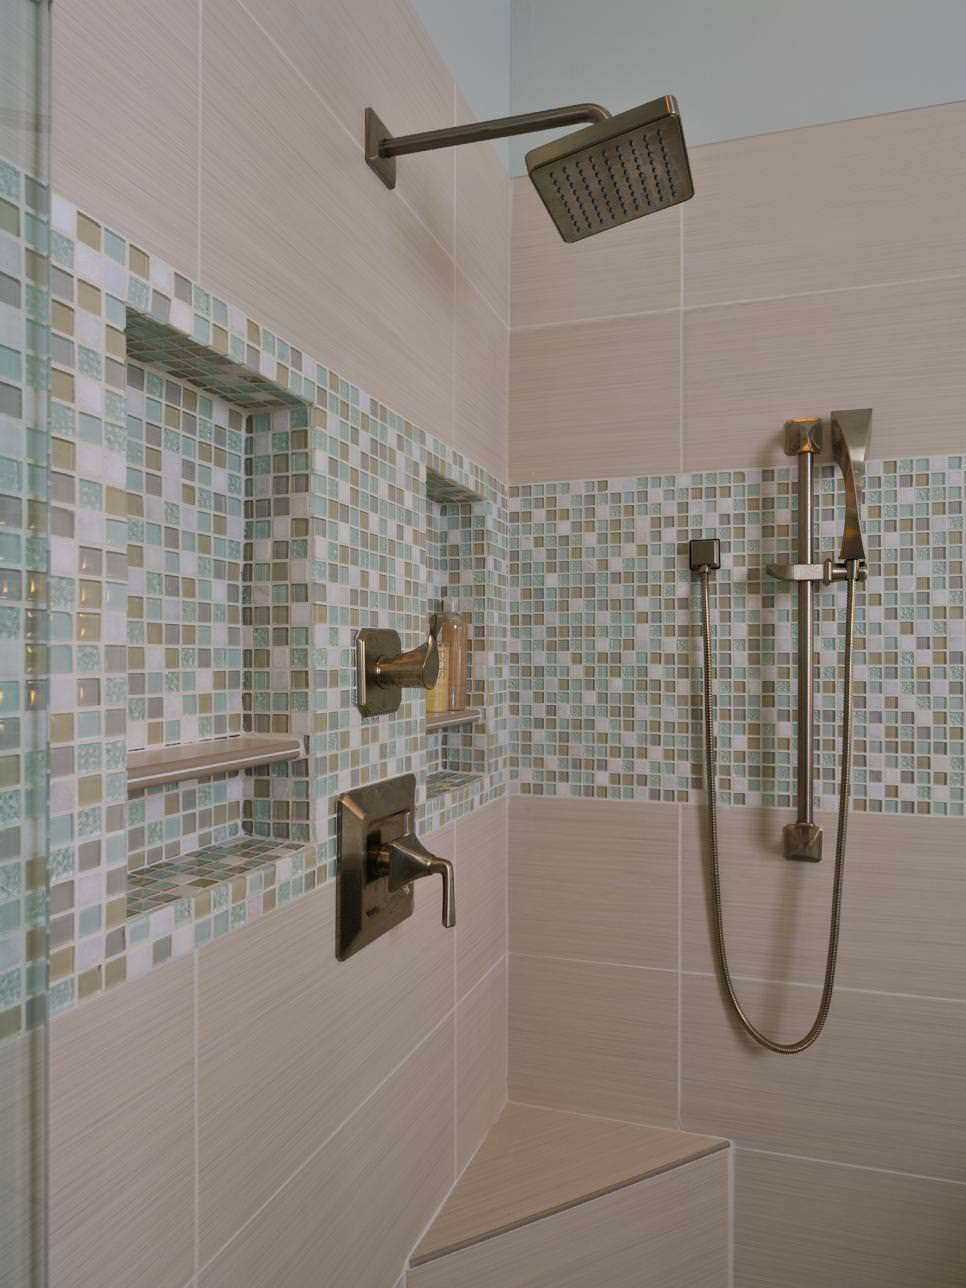 Bathroom Mosaic Design Of 24 Mosaic Bathroom Ideas Designs Design Trends